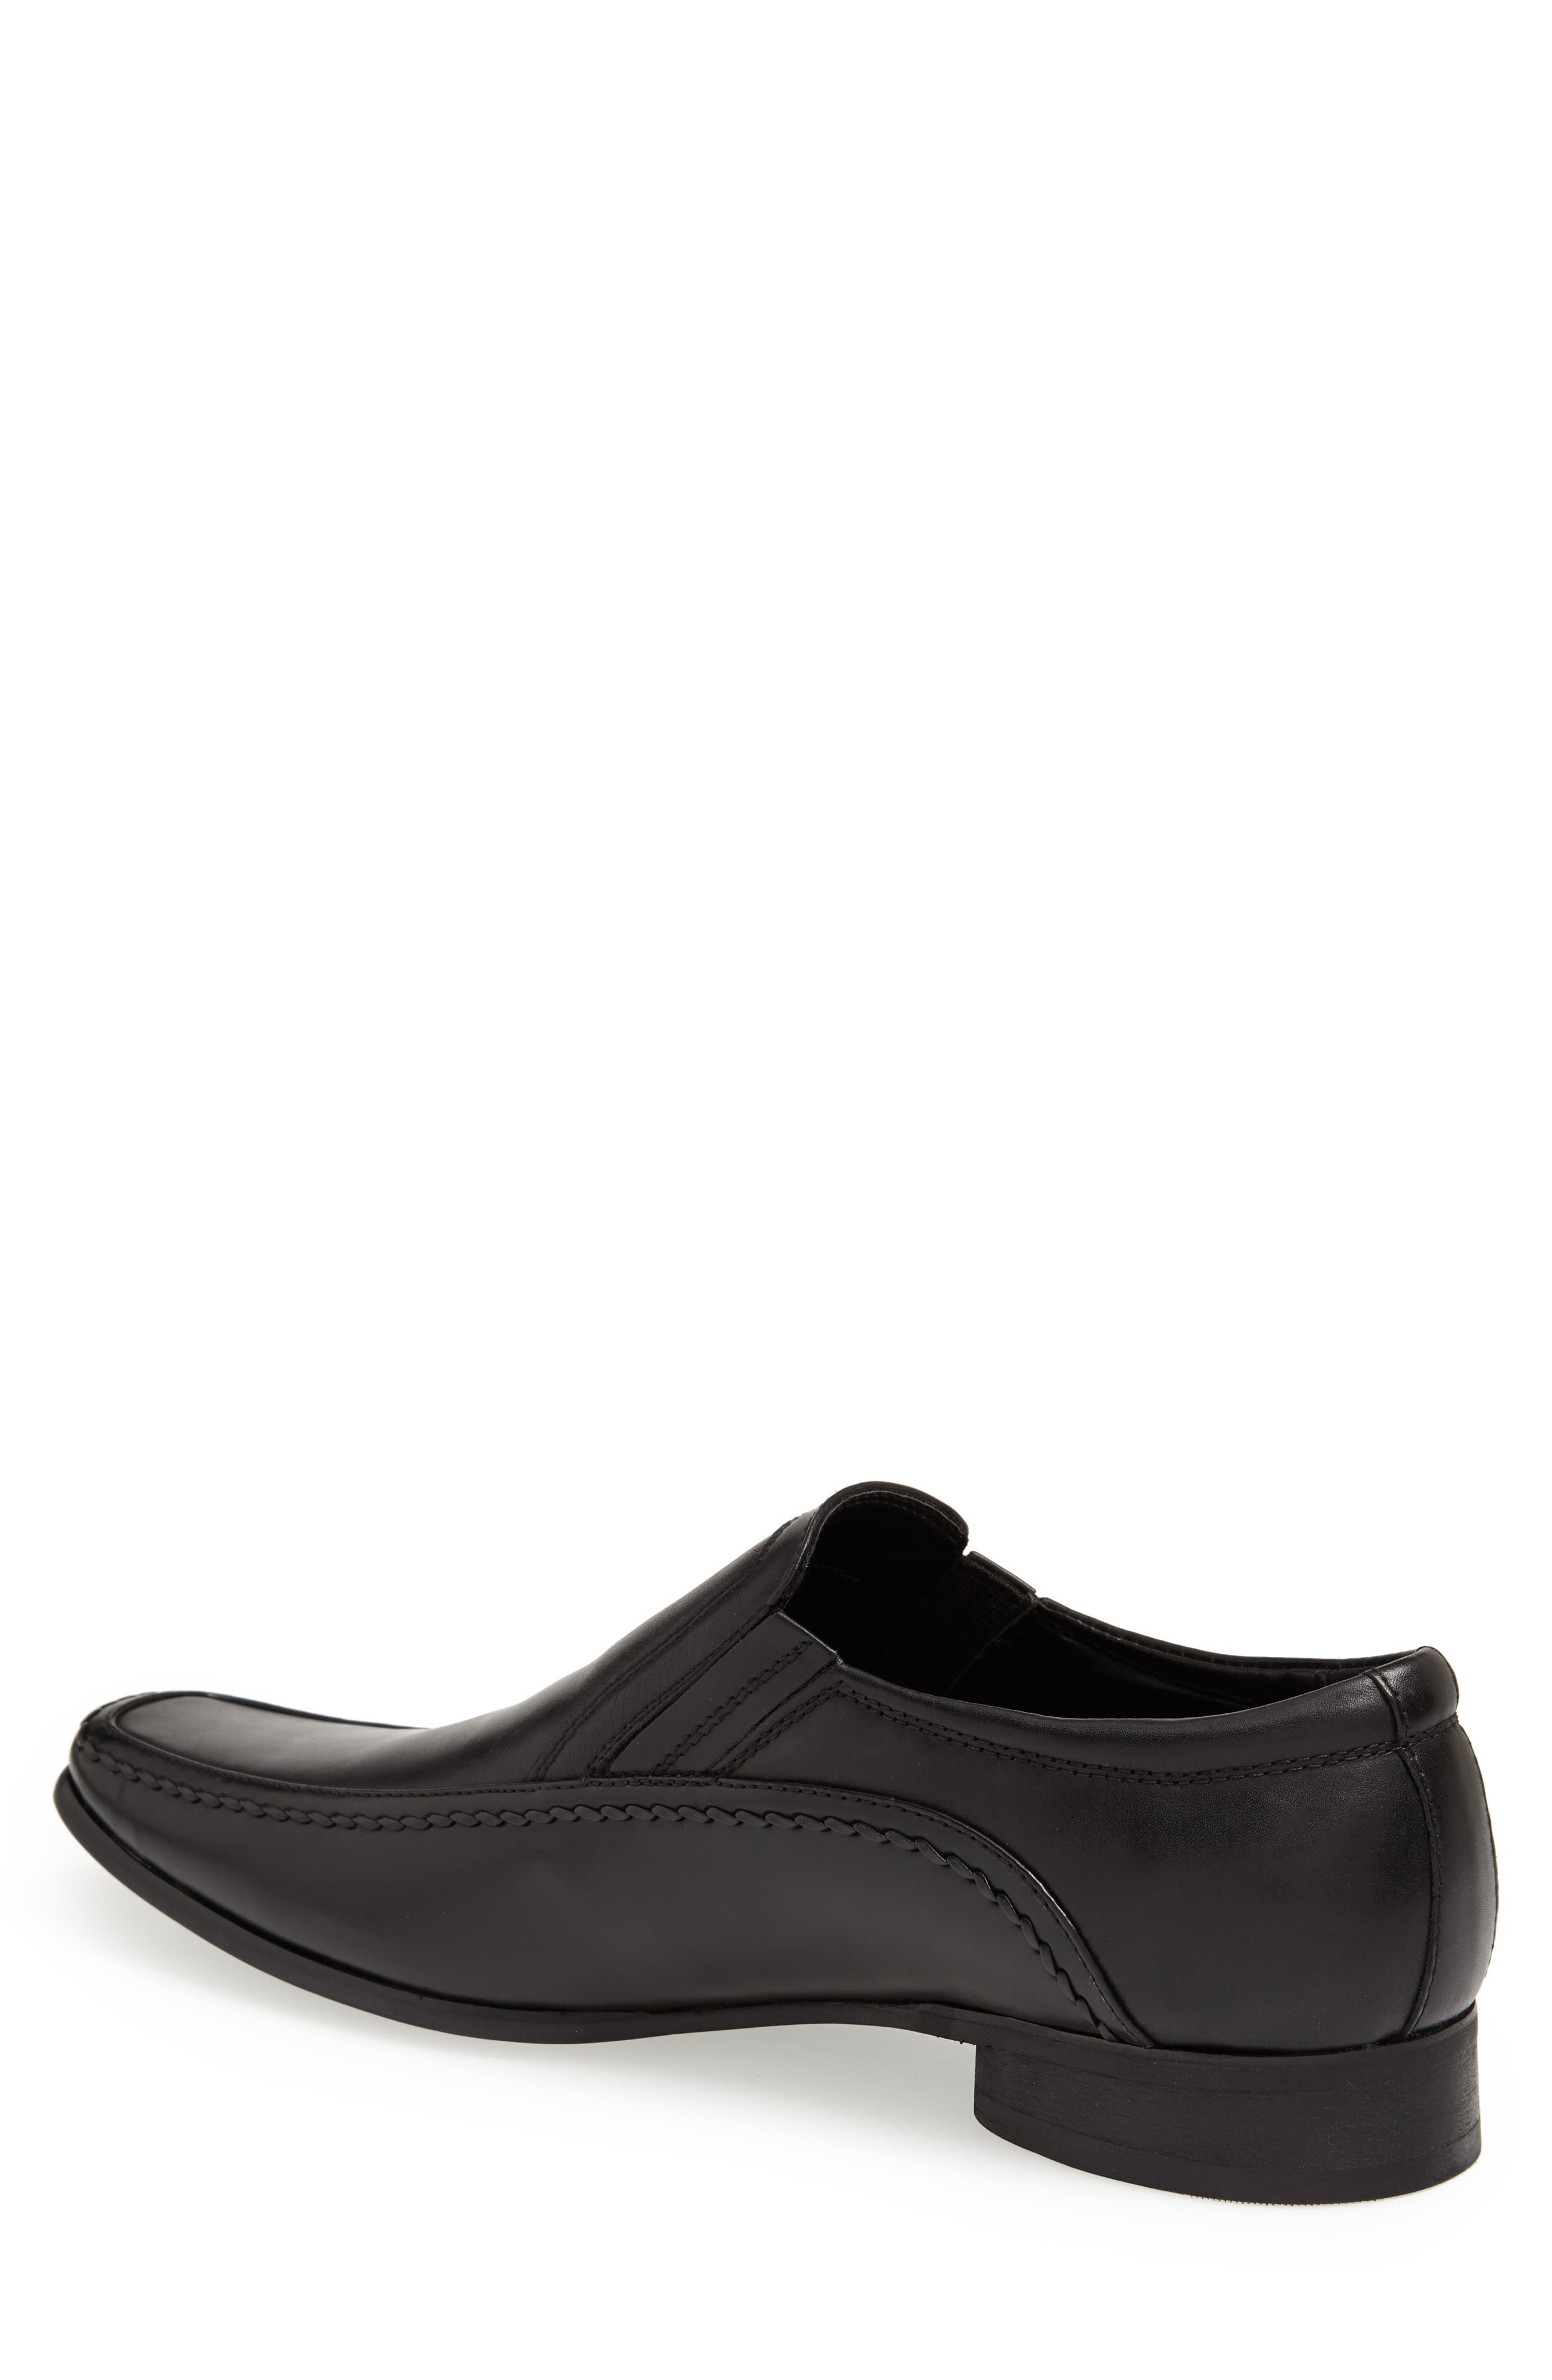 REACTION KENNETH COLE,                             'Key Note' Slip-On,                             Alternate thumbnail 2, color,                             001